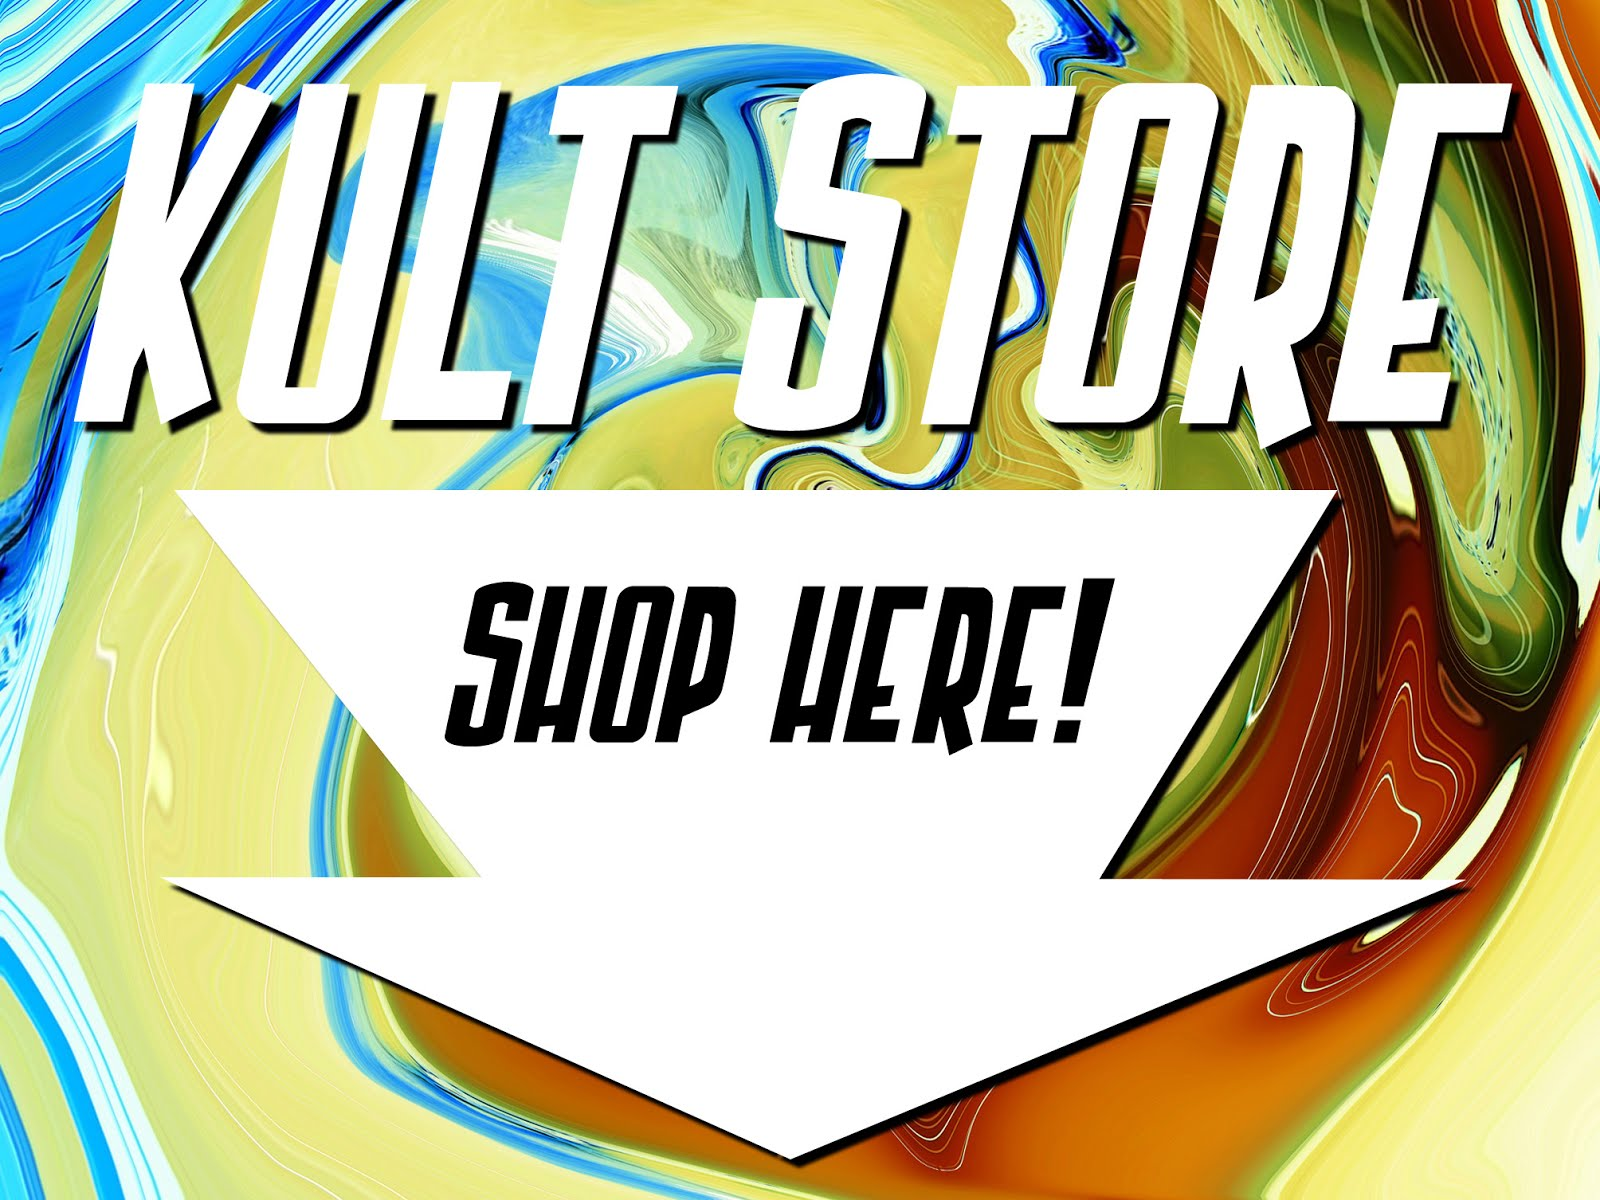 Buy Kult Creations digital publications below!